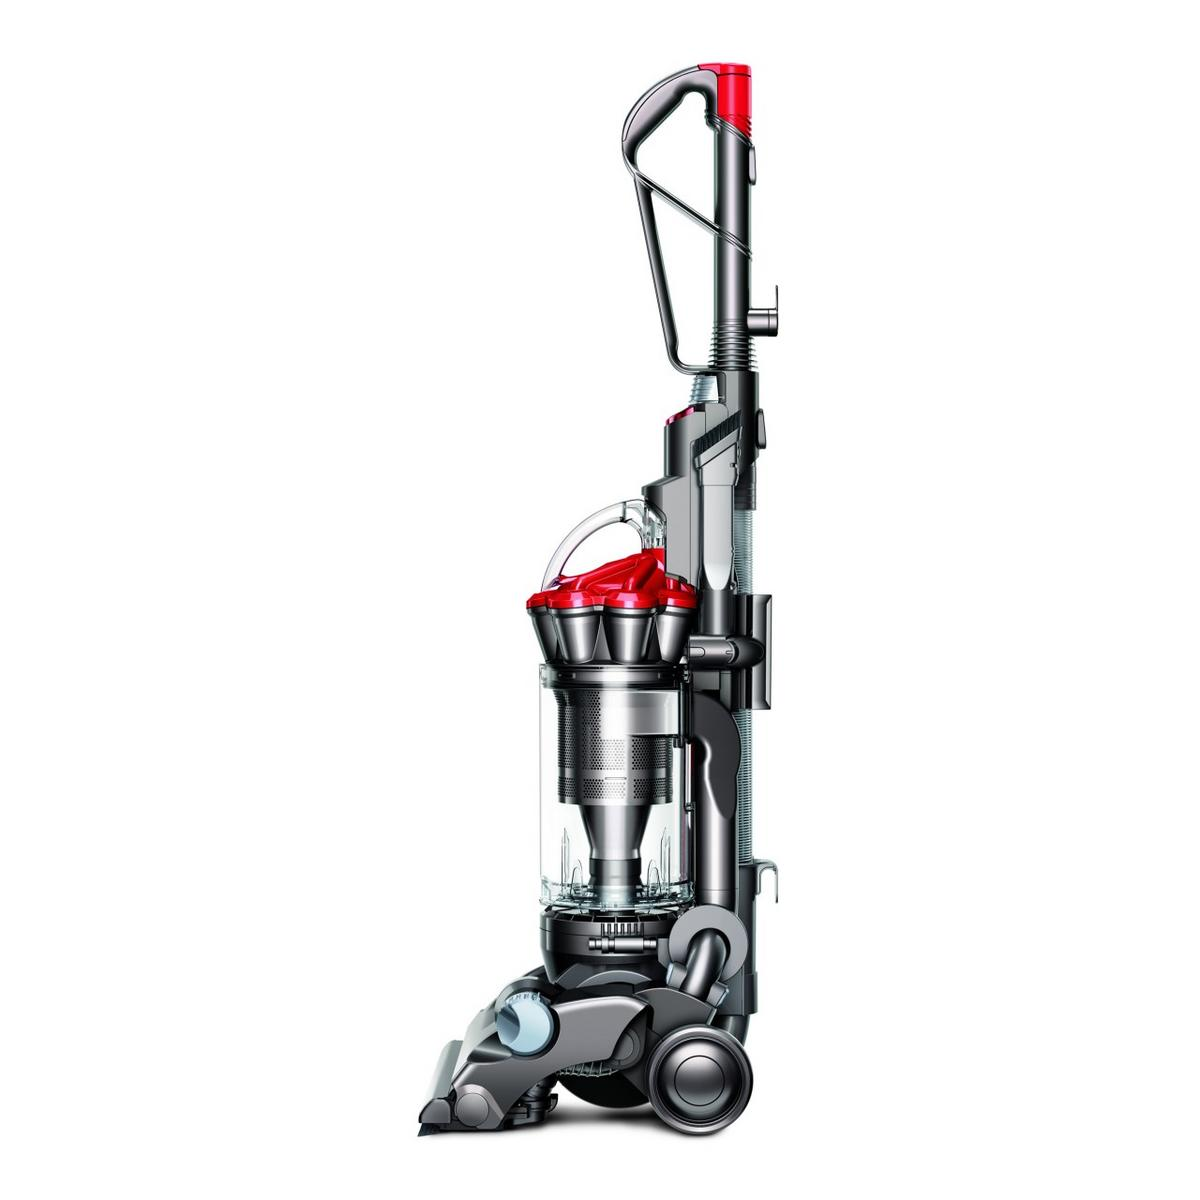 Dyson DC33i 255 Air Watts Bagless Upright Ball Vacuum Cleaner Preview